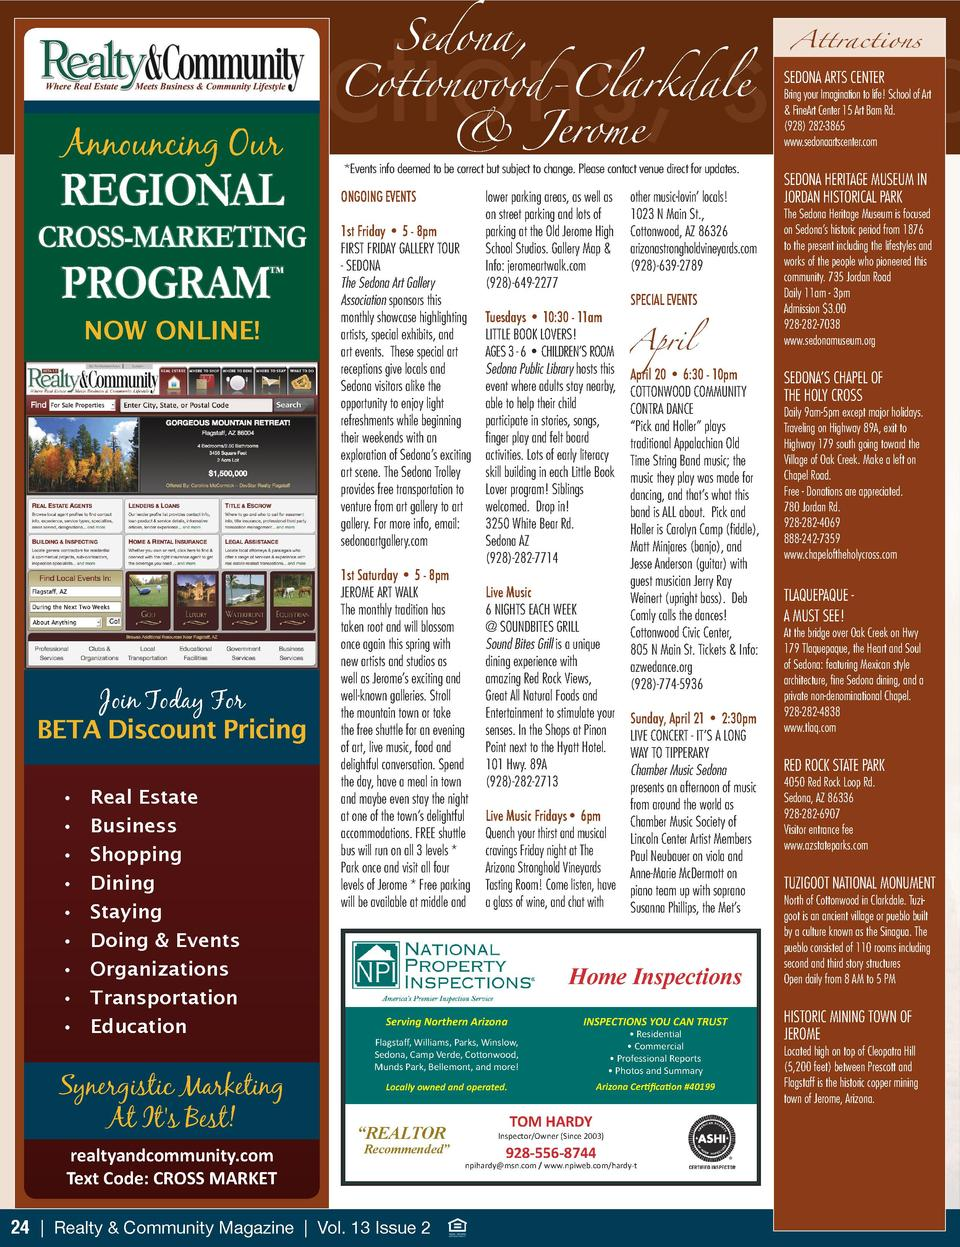 Sedona,  attractions, spec  Announcing Our  REGIONAL CROSS-MARKETING  PROGRAM       NOW ONLINE   Join Today For BETA Disco...